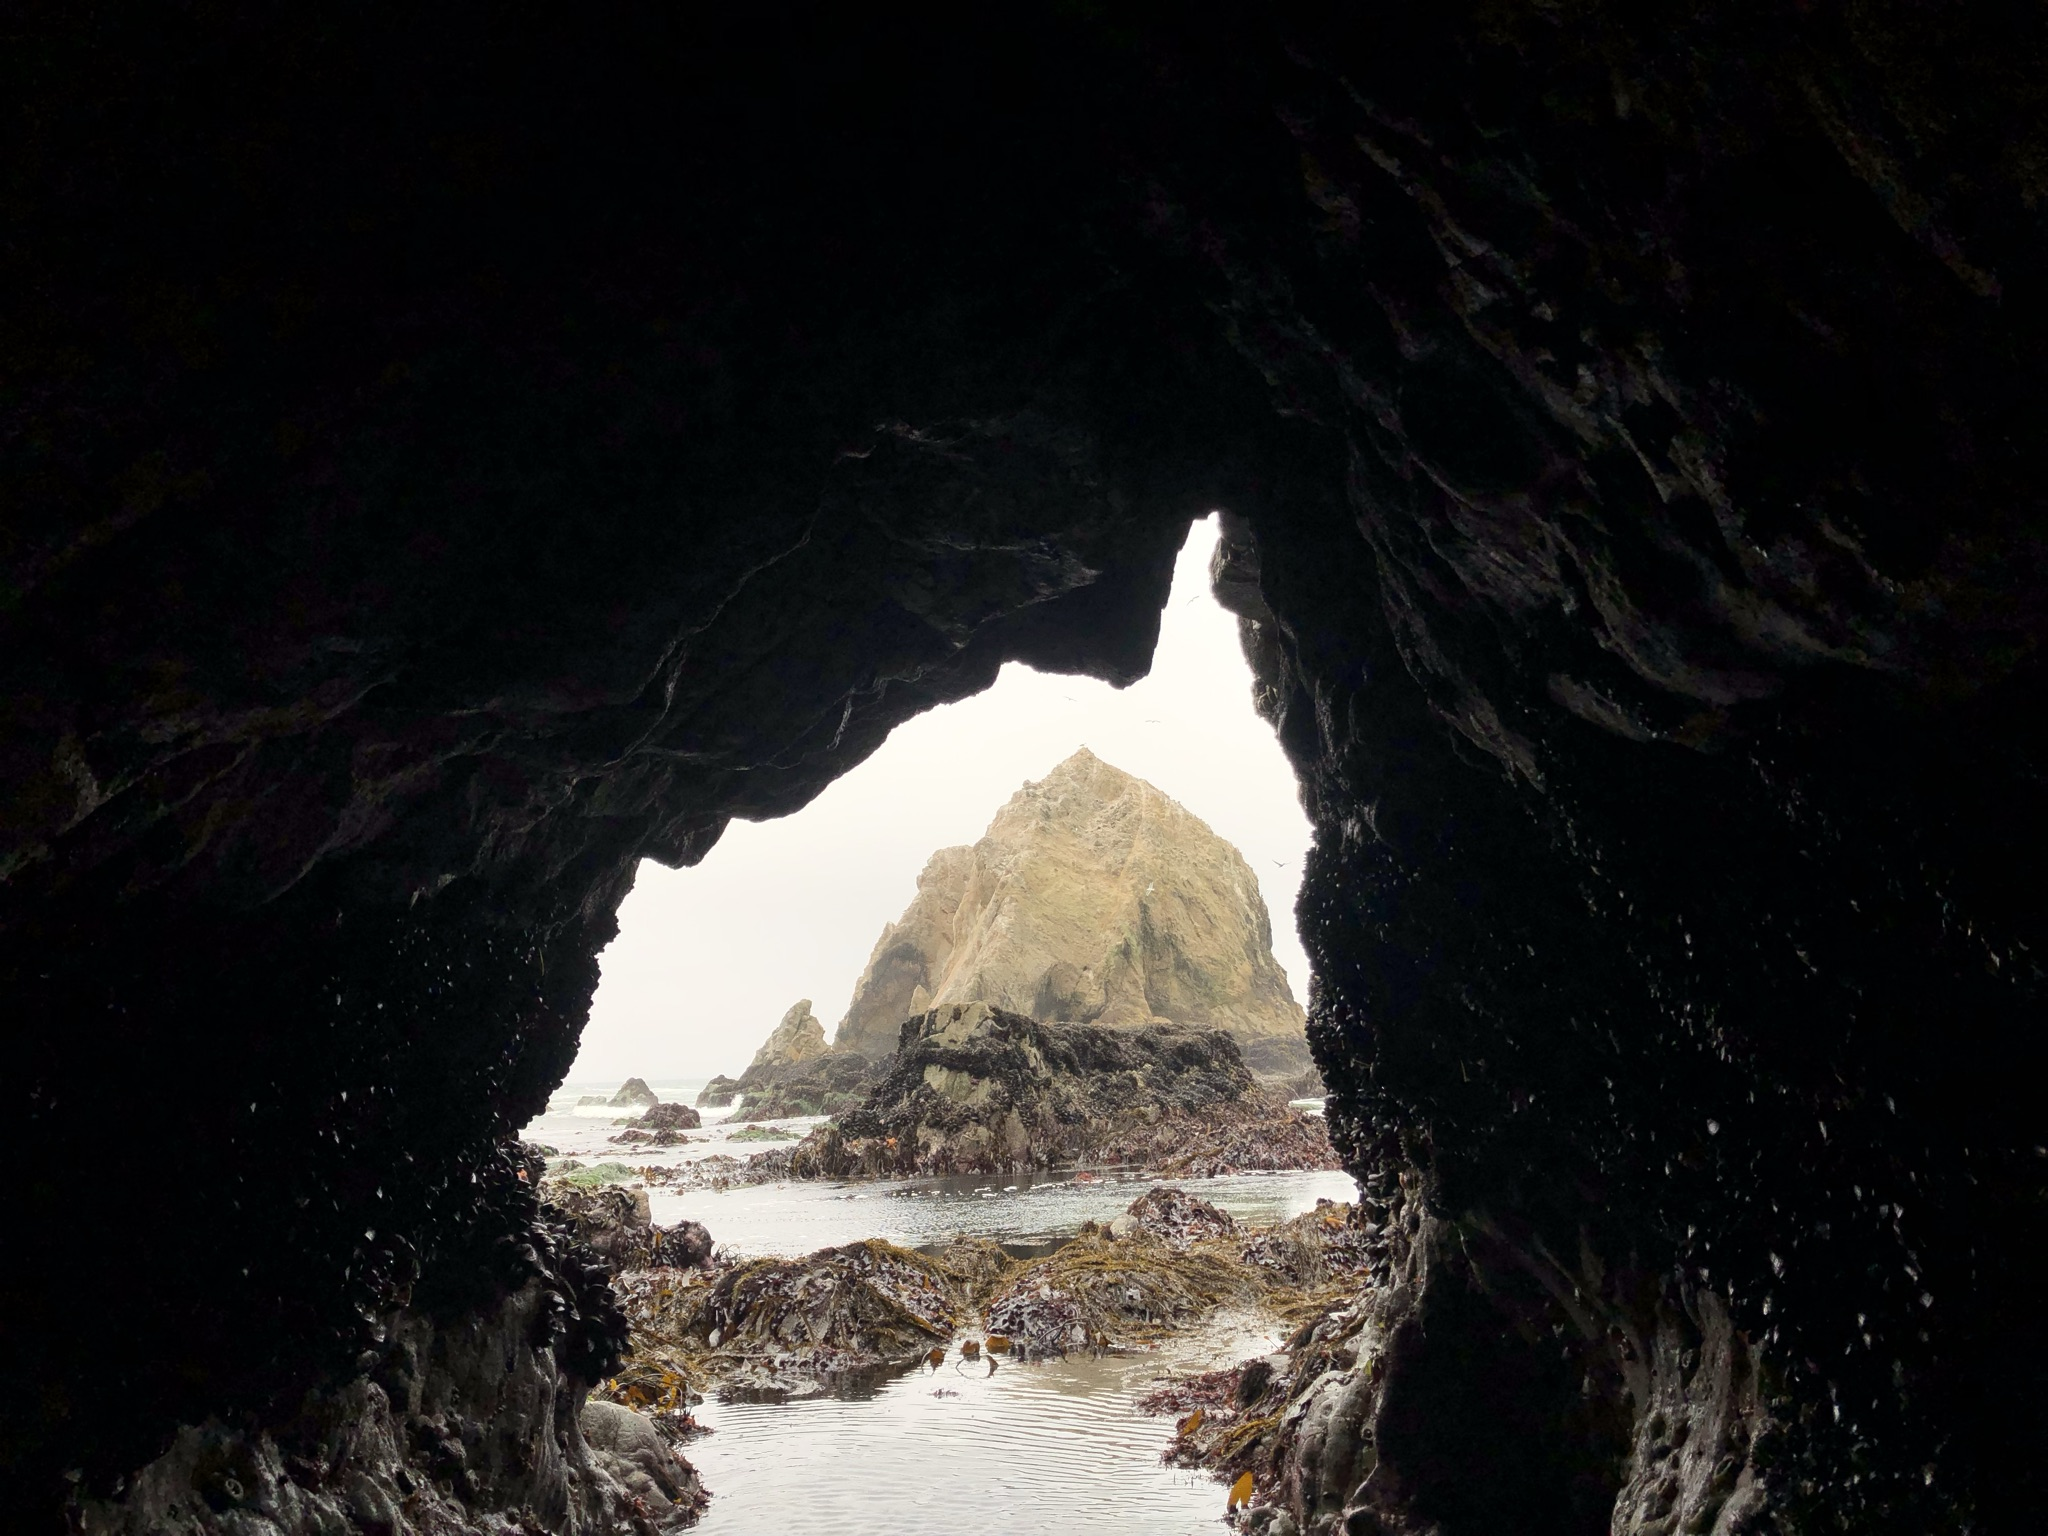 View from inside a cave looking out to a large rock called Elephant Rock. The cave walls are black and there is a stream of water leading out to the rock and the ocean.